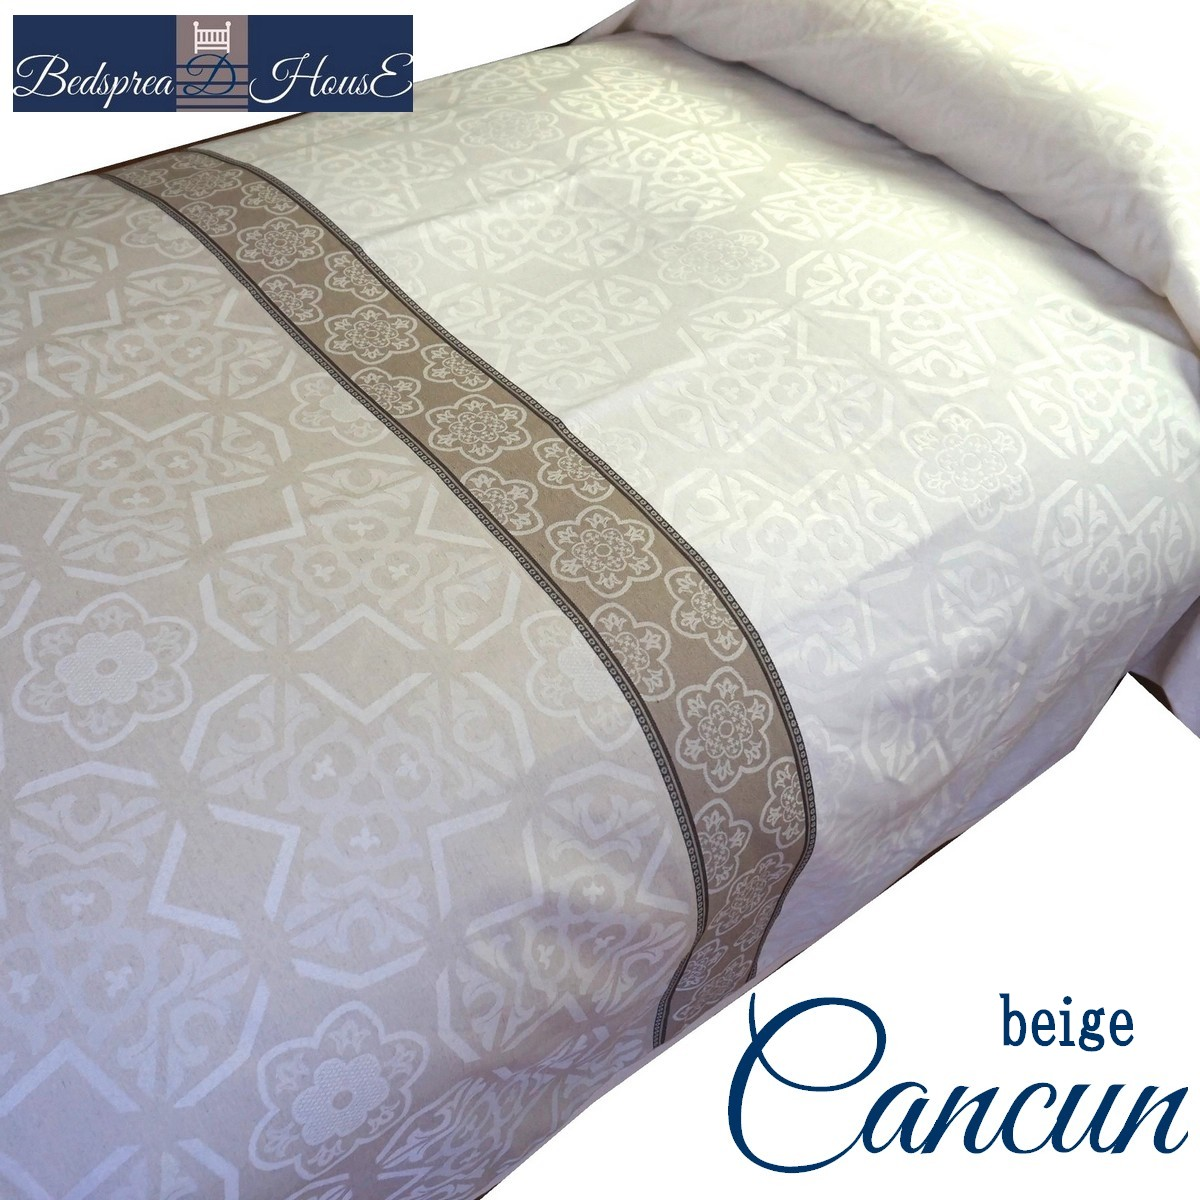 Bedspread House In Rakuten Ichiba Shop The Bedcover Hotel Jacquard Specifications Chika Malle Bar Gift Present Home Washing That There Is Not